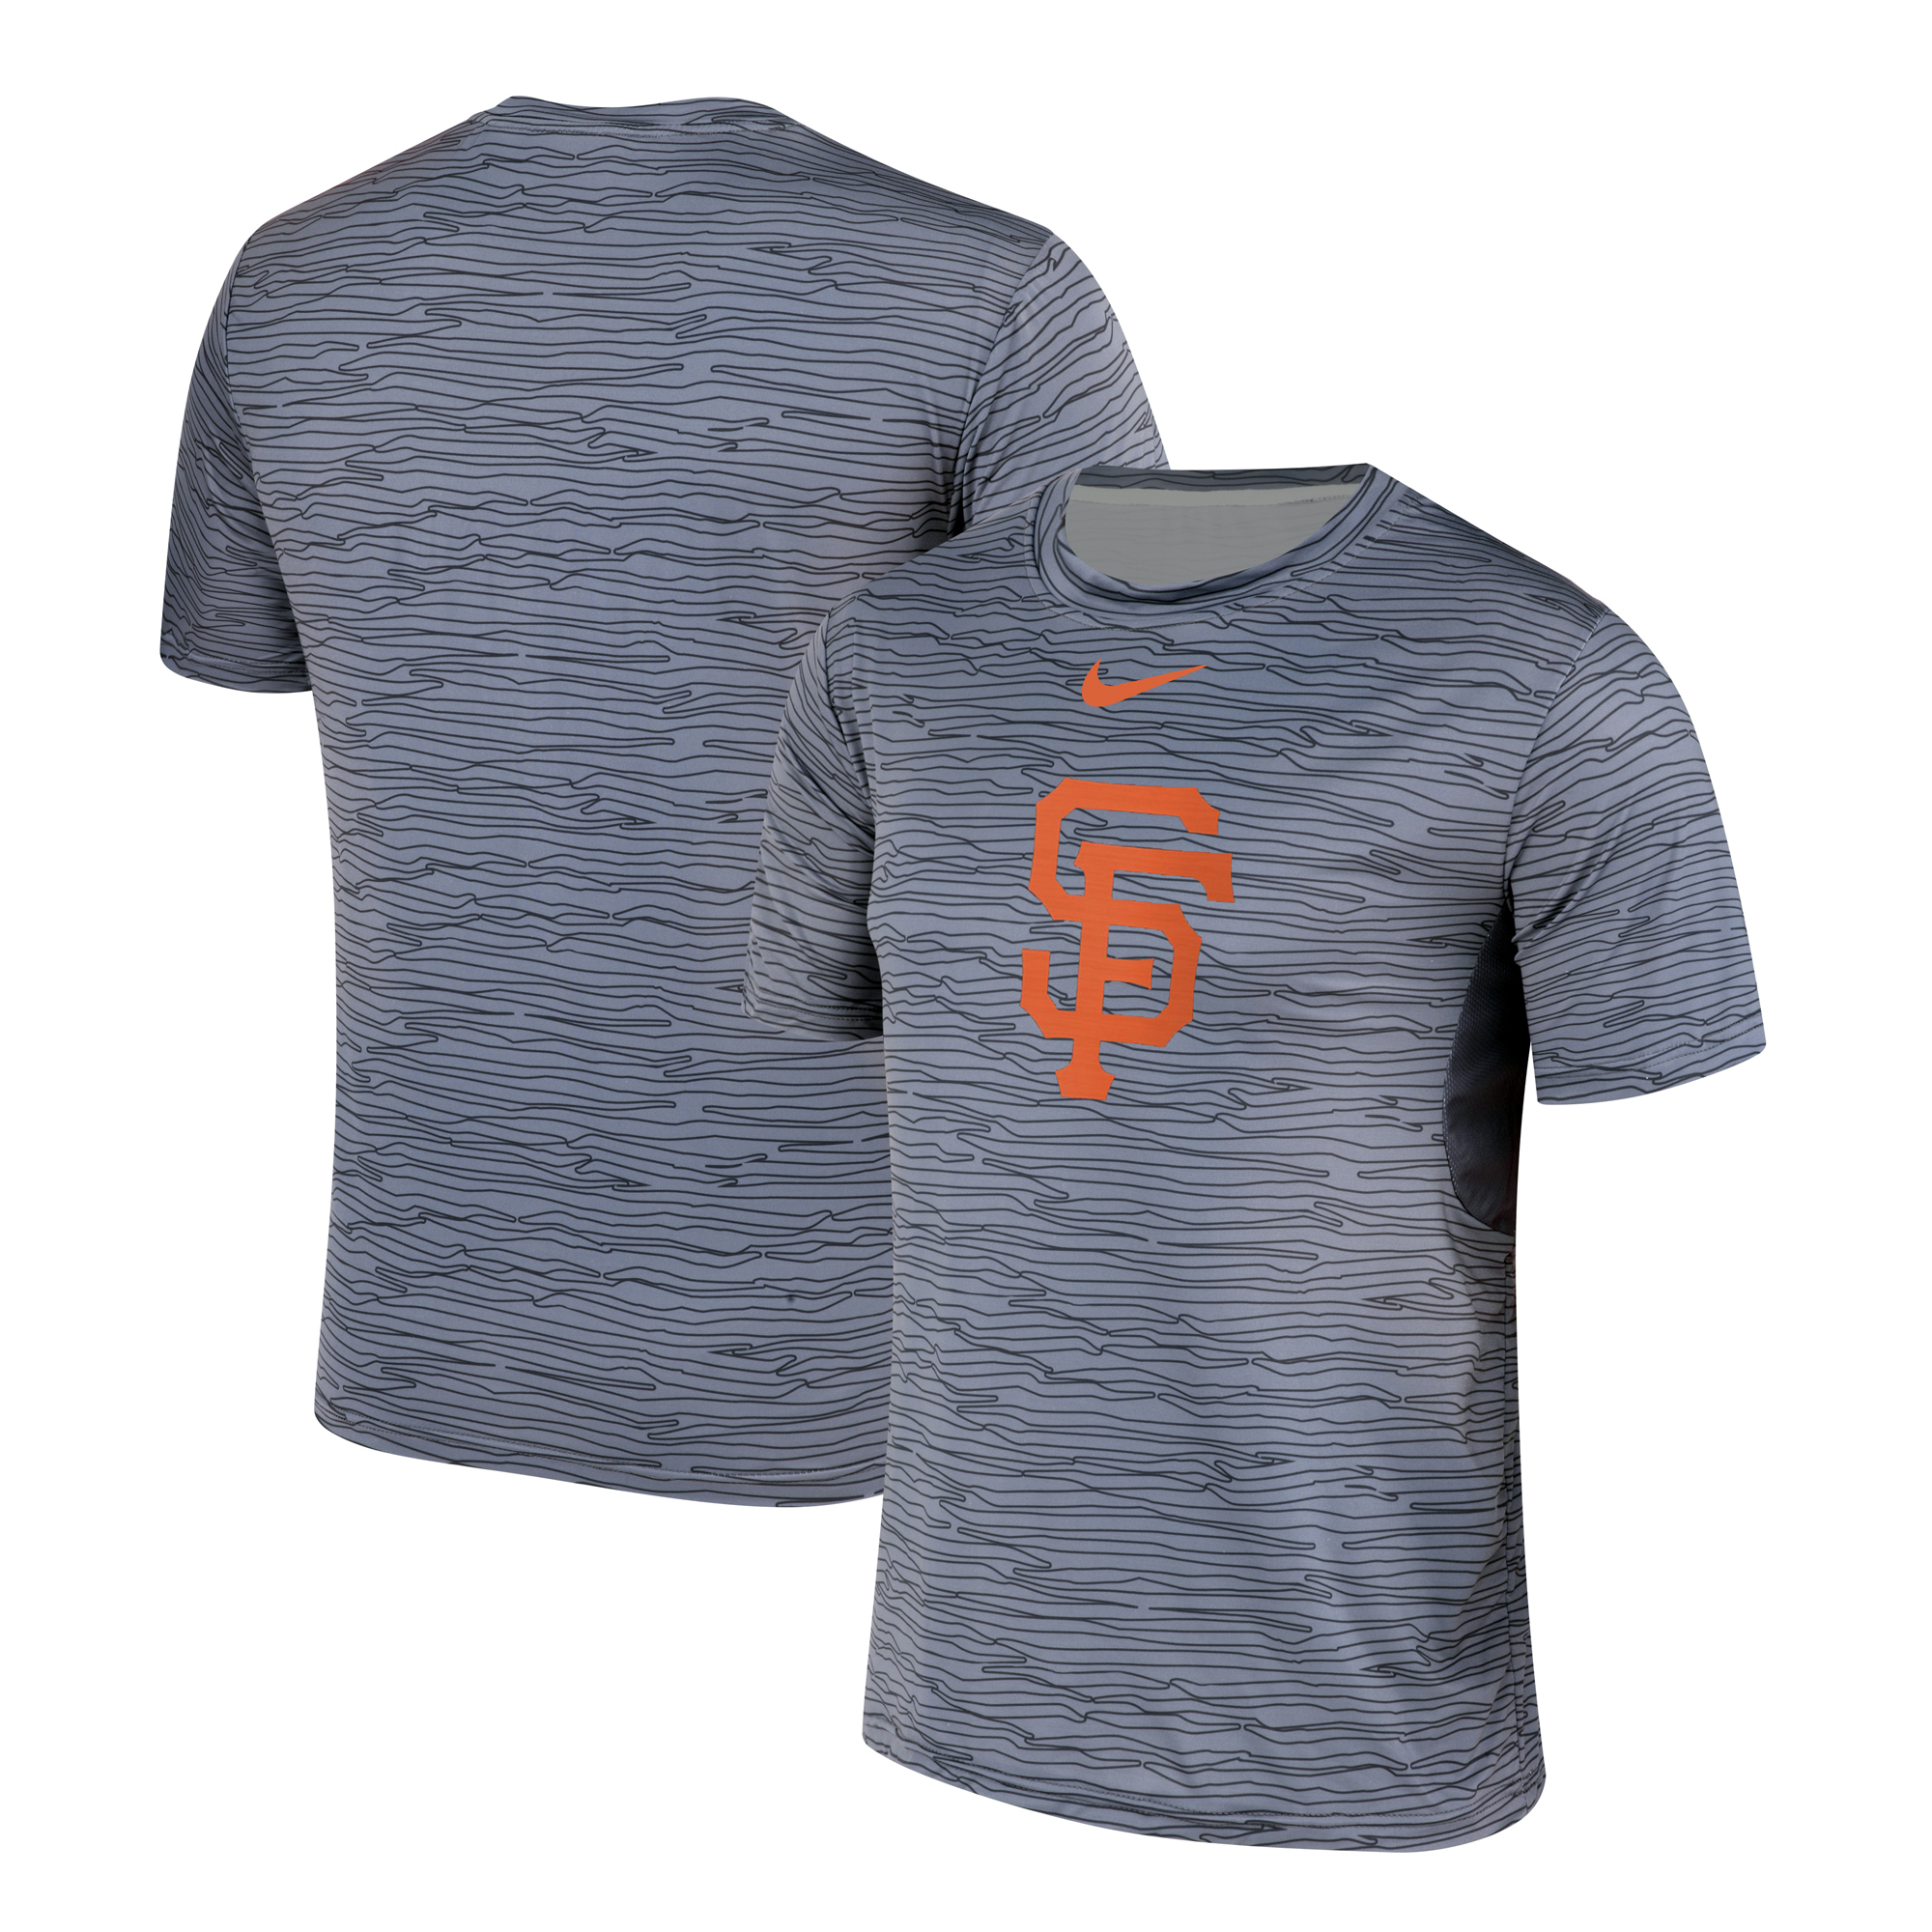 Nike San Francisco Giants Gray Black Striped Logo Performance T-Shirt